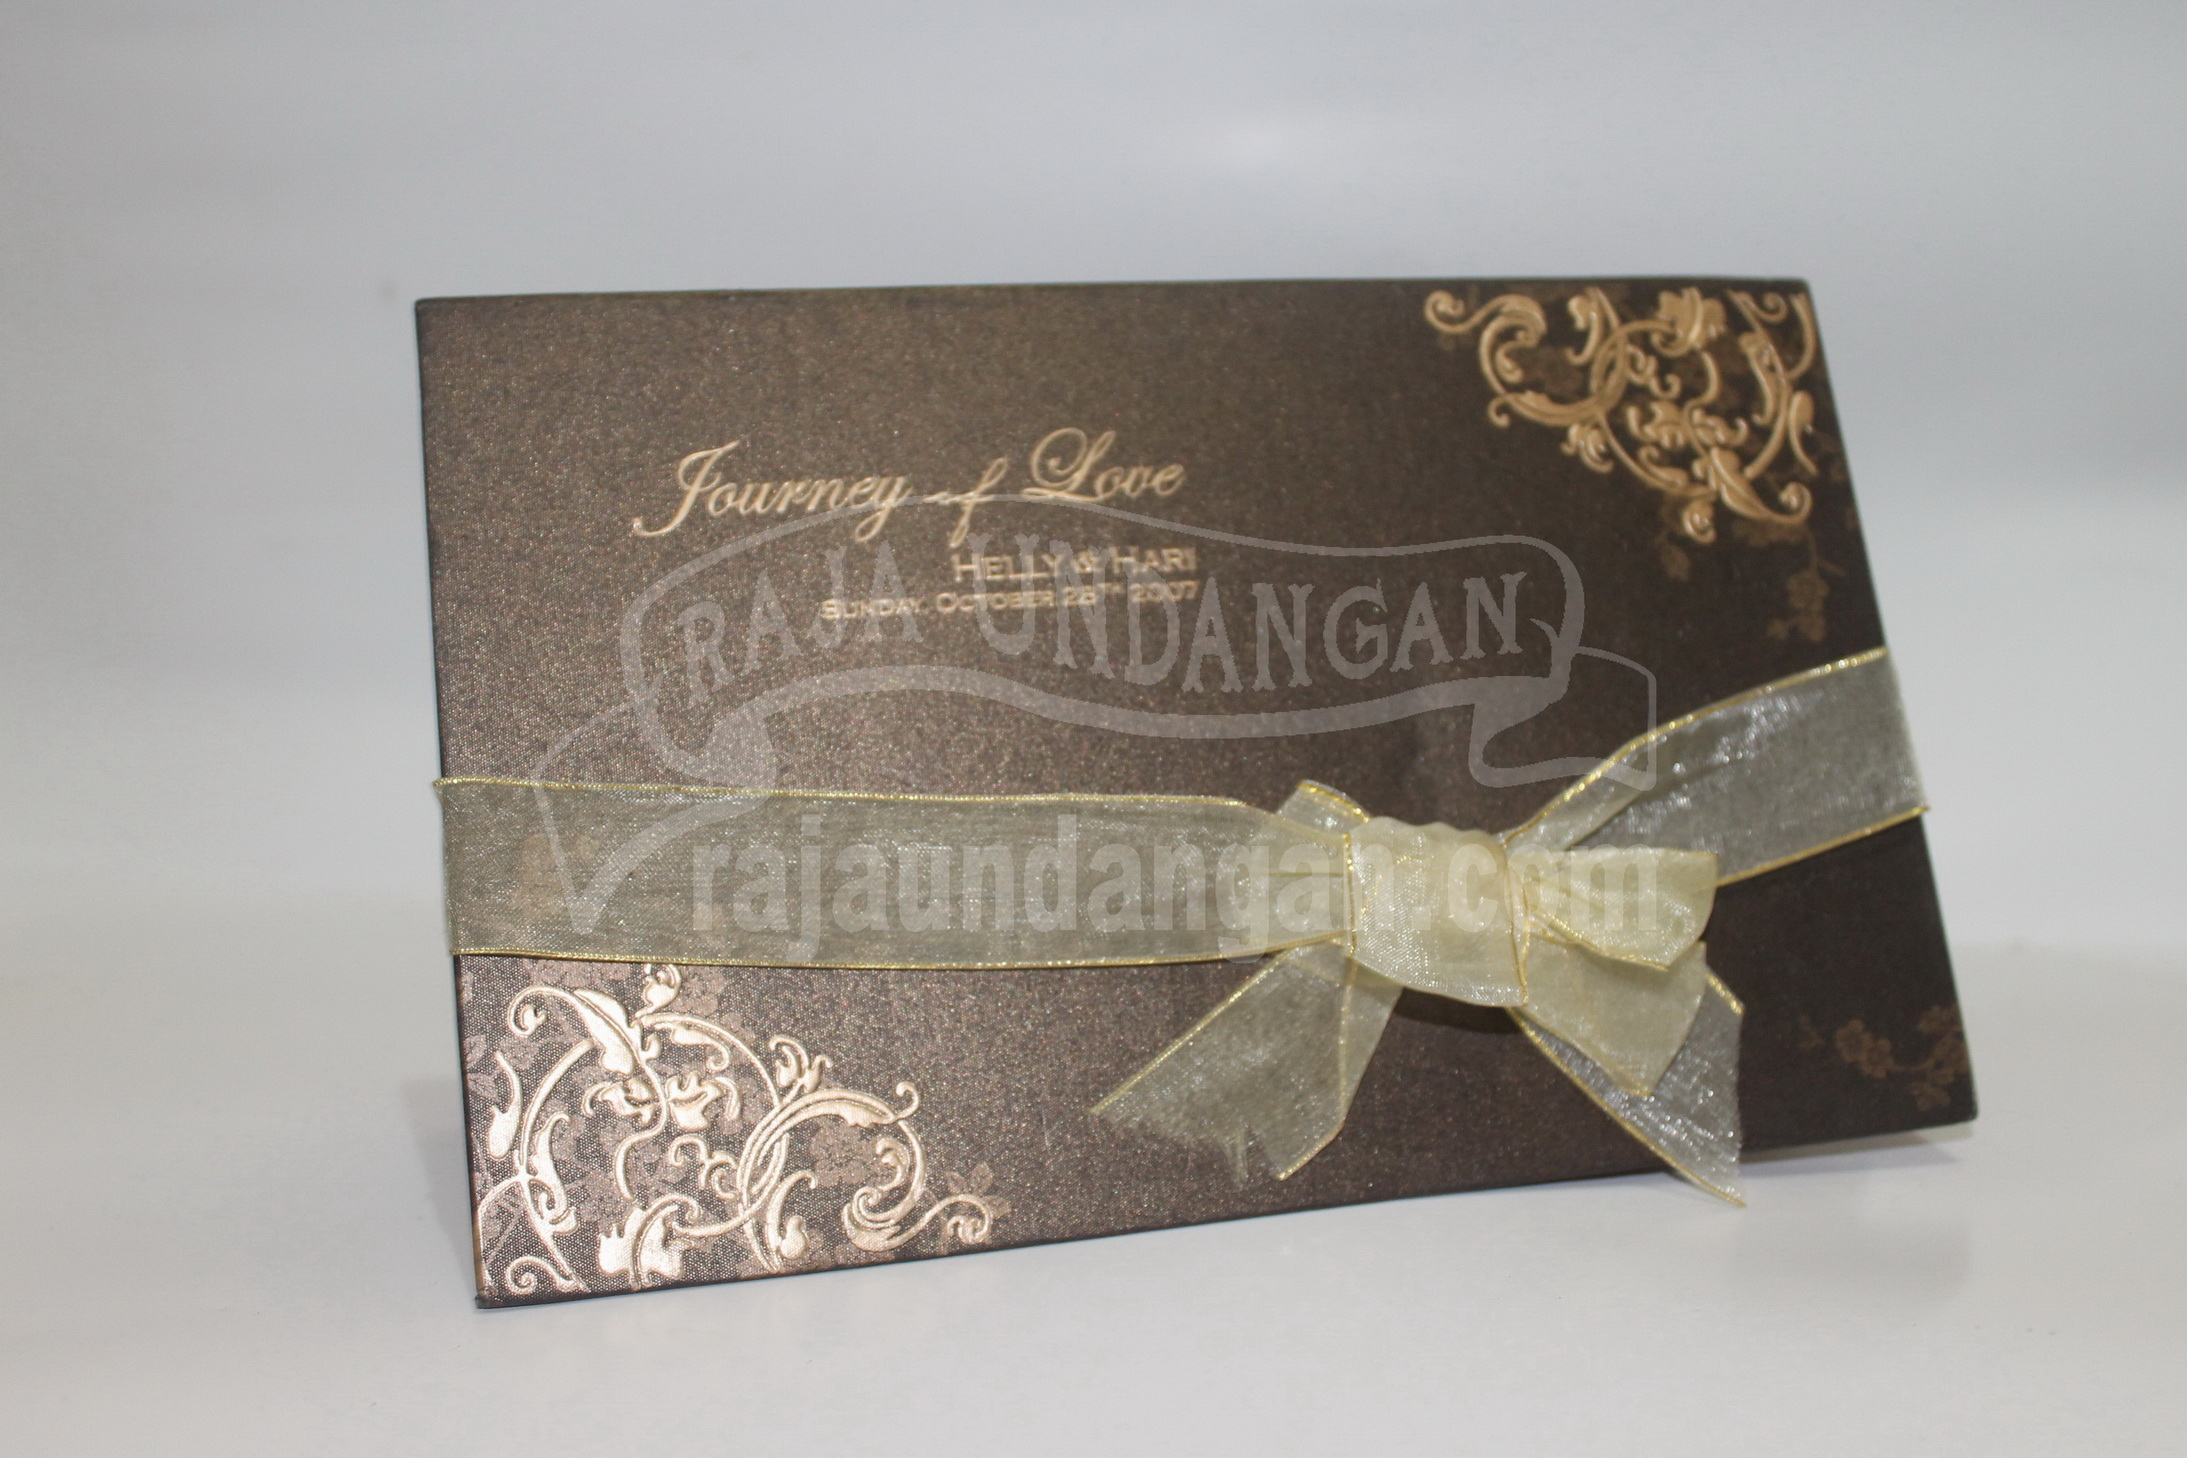 IMG 2386 - Membuat Wedding Invitations Unik dan Murah di Kedungdoro